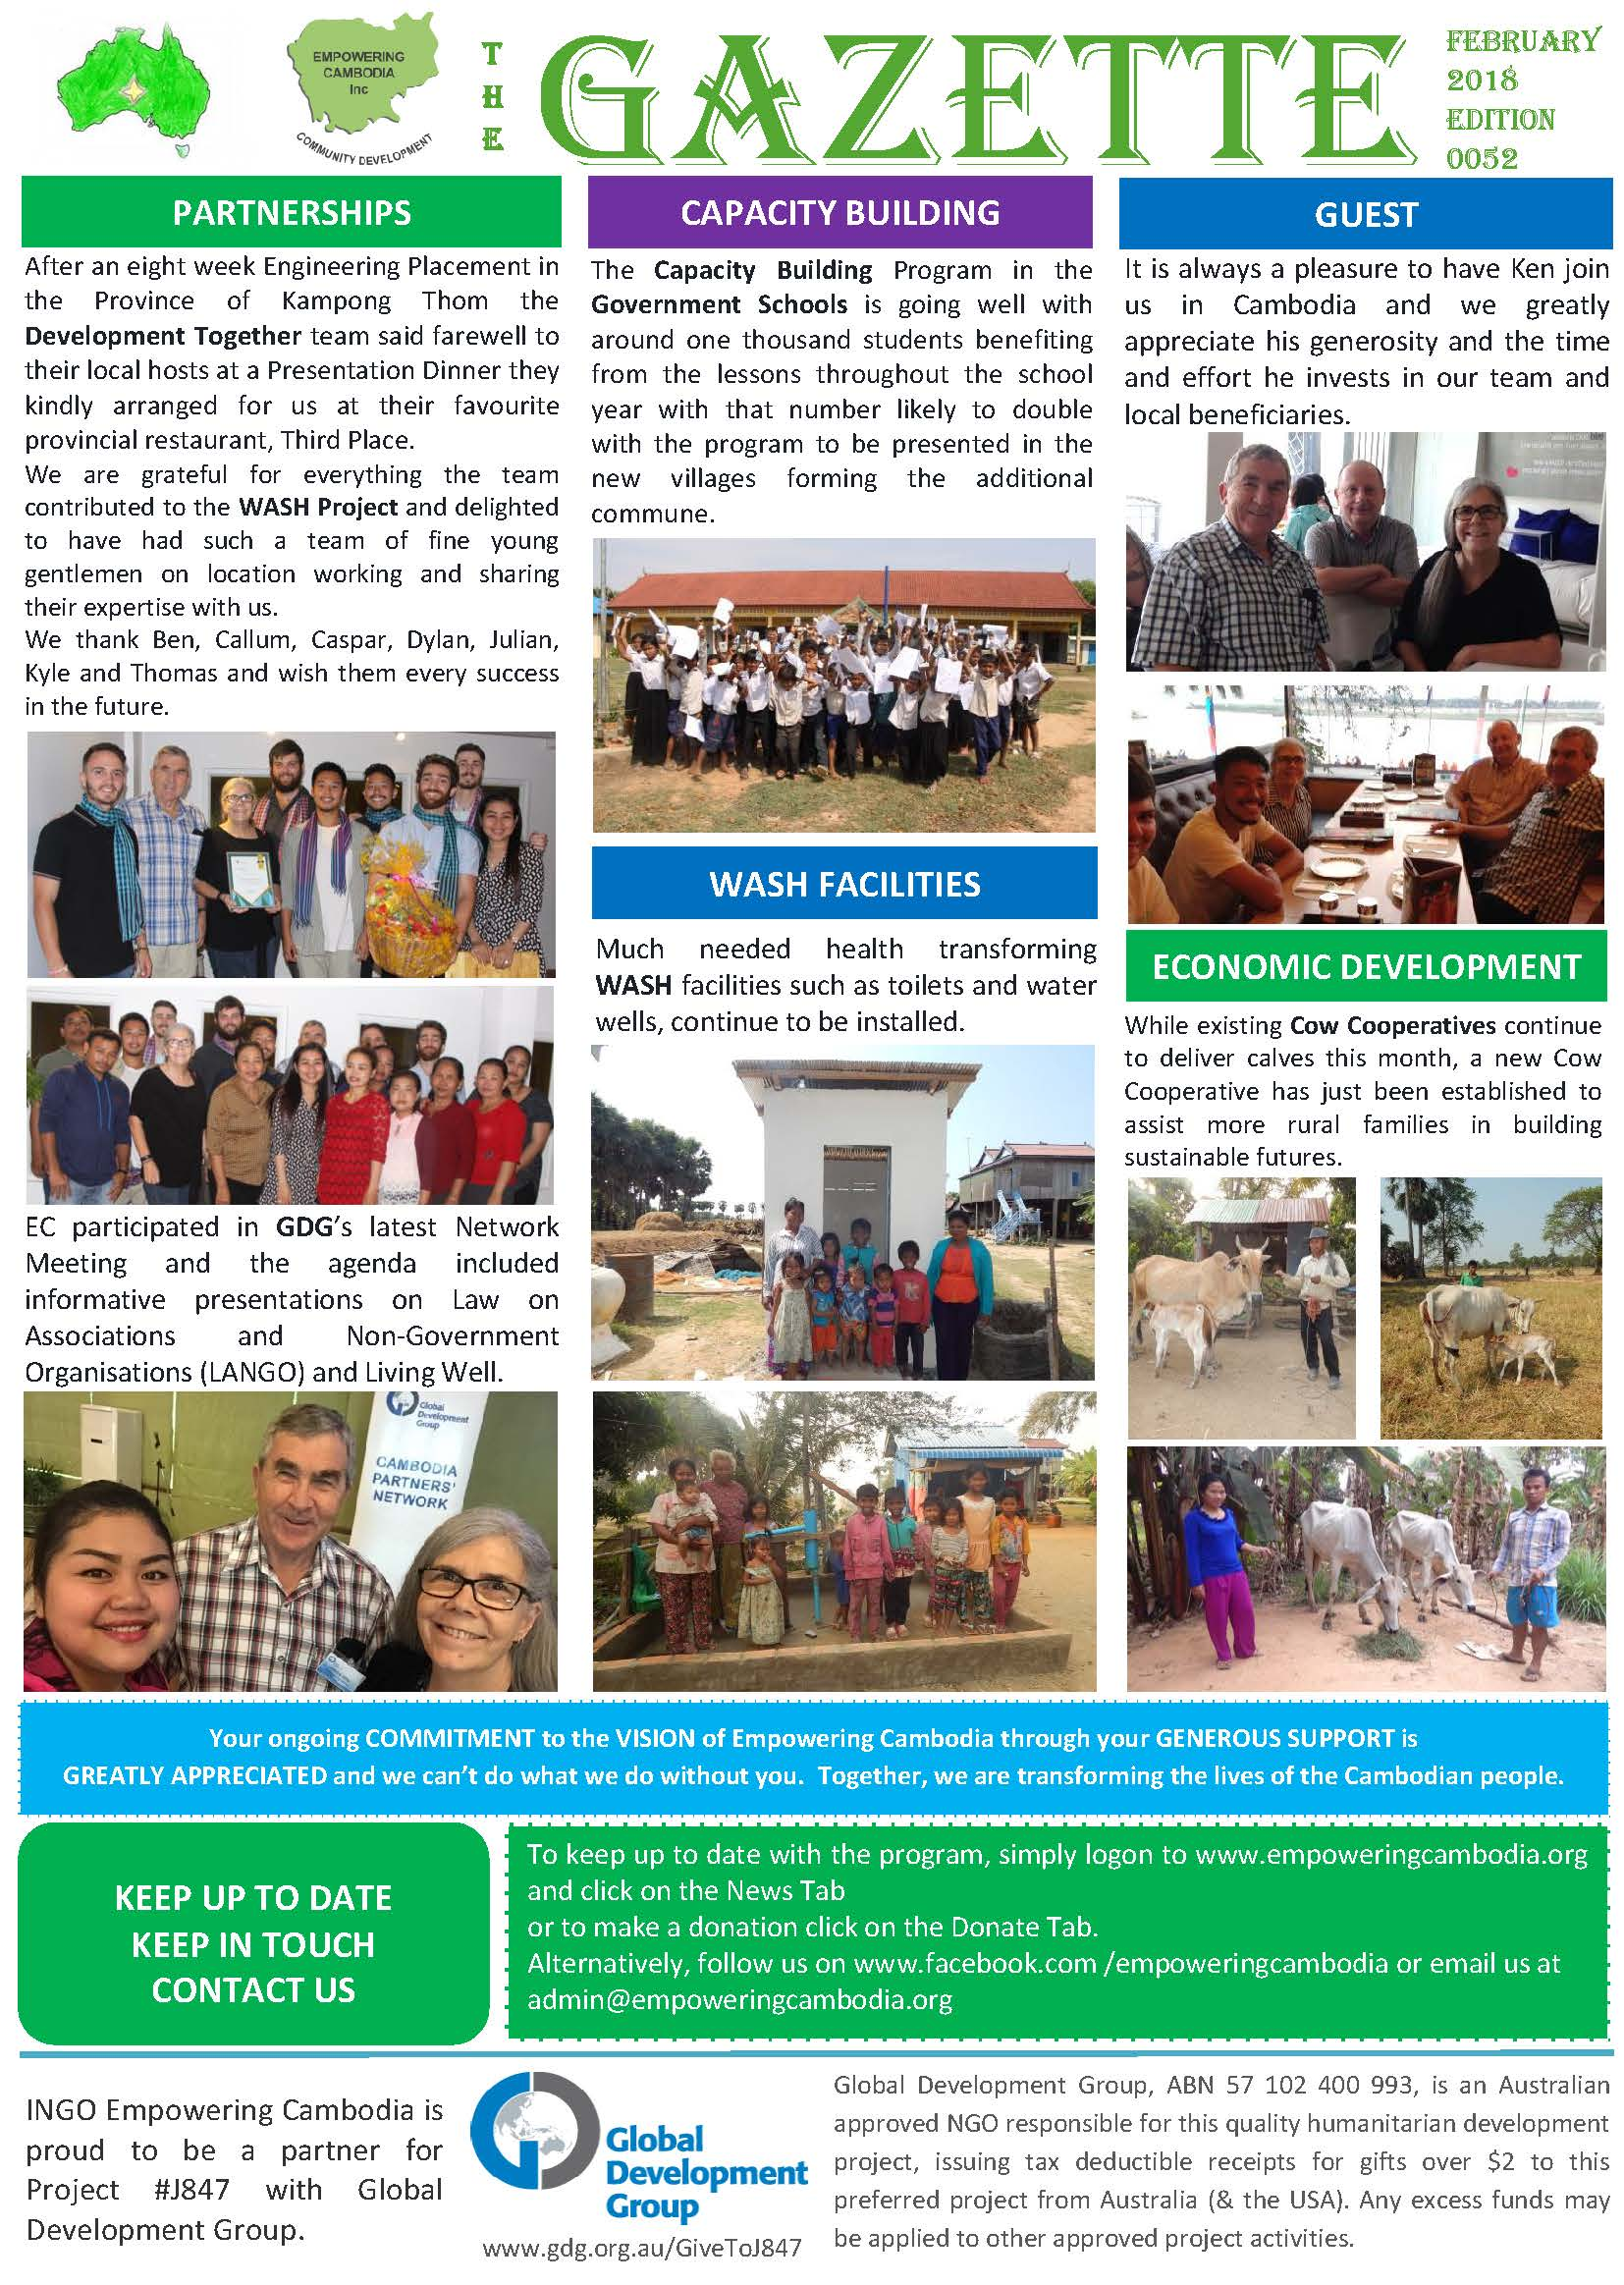 EC Gazette 0052 February 2018